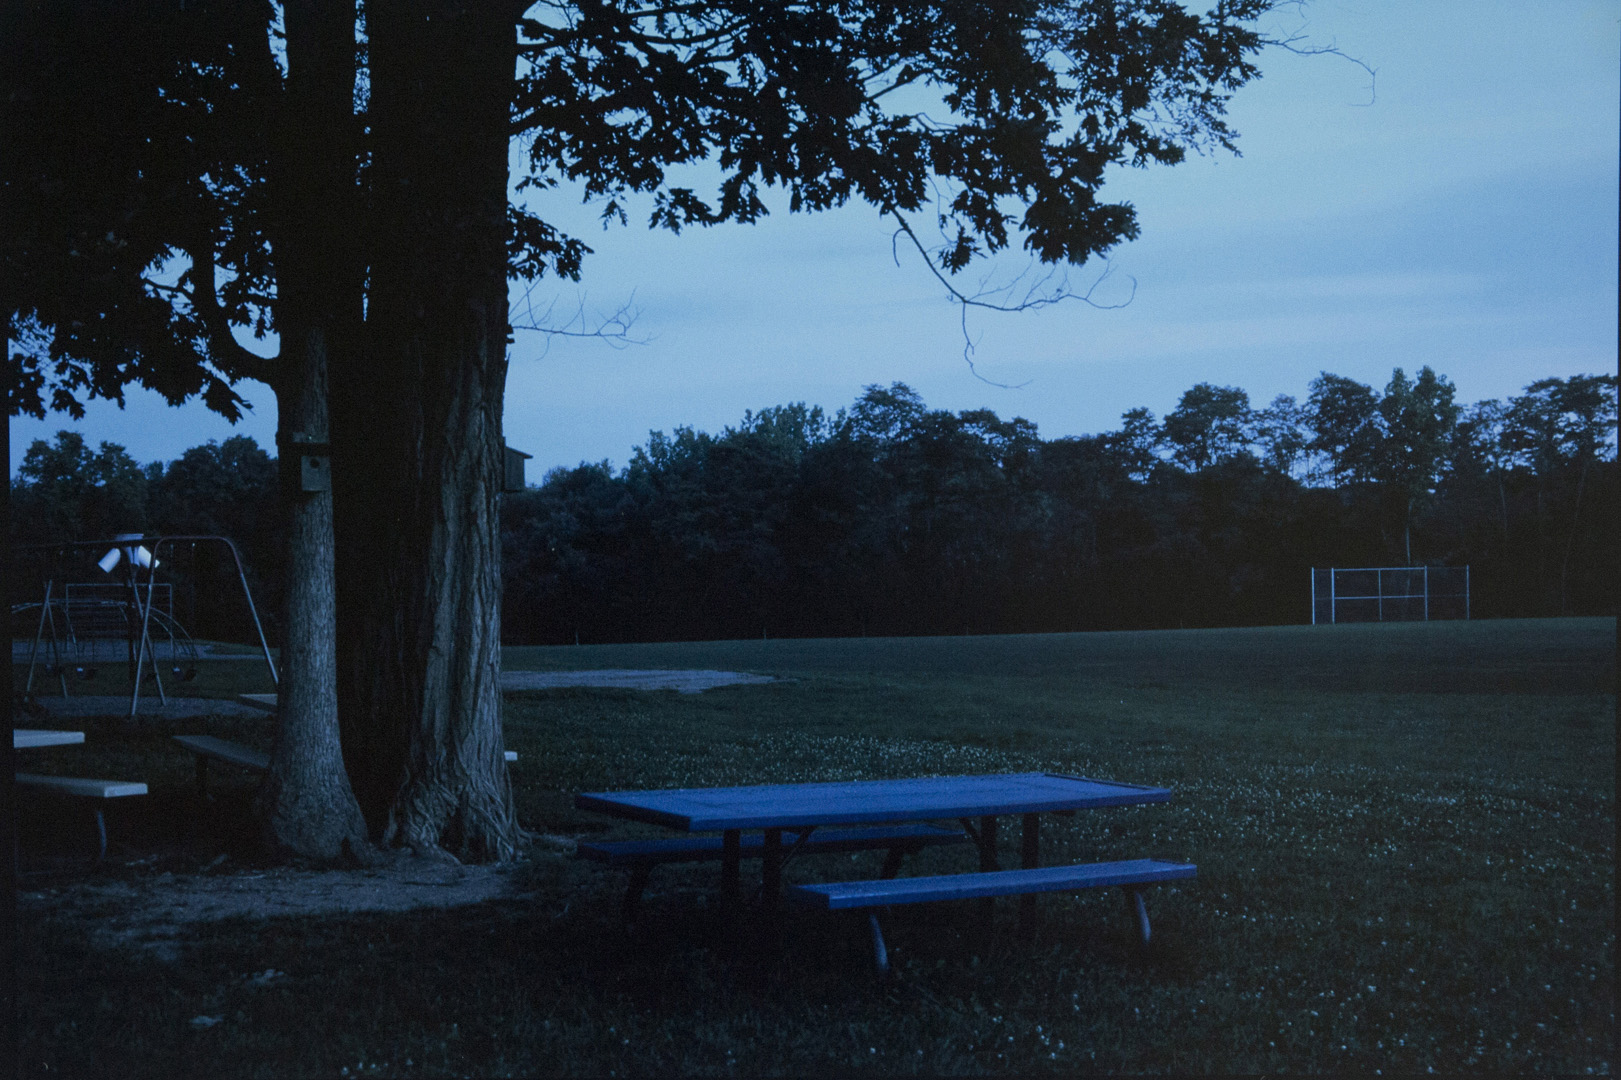 dusk picnic table in park009.jpg